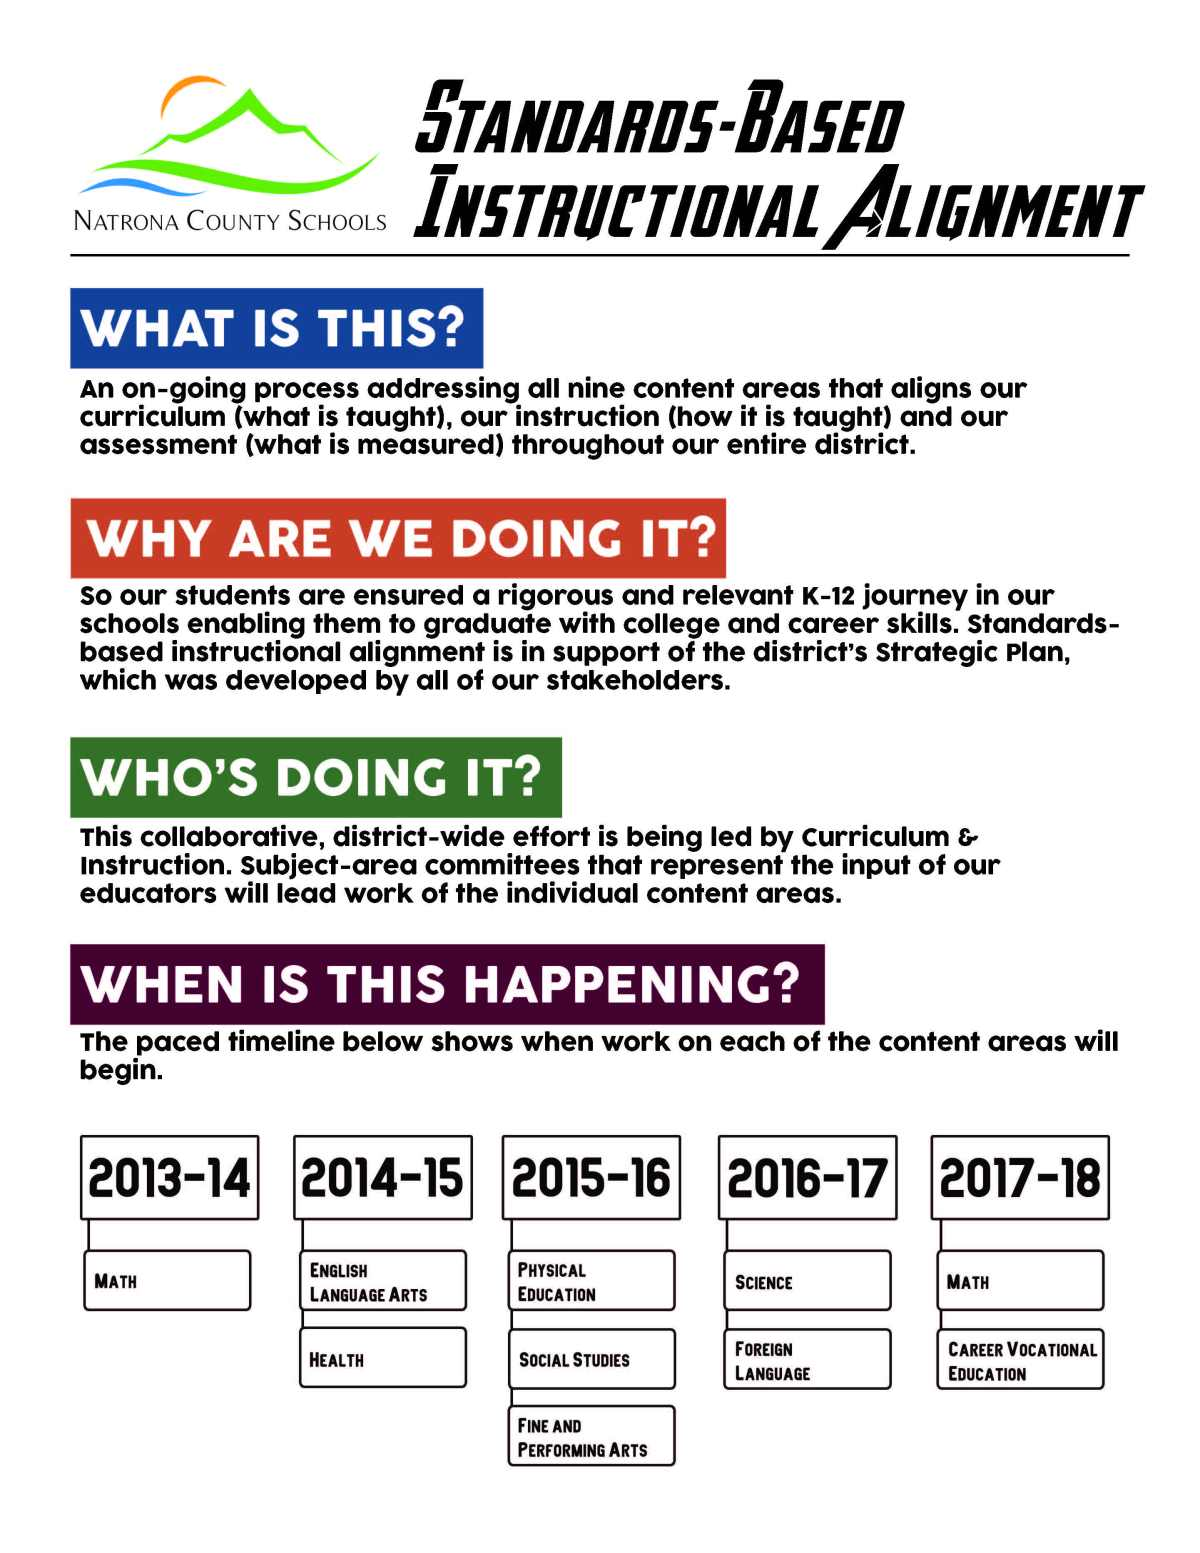 6-2-Standards-Based Instructional Alignment One-Sheet 2